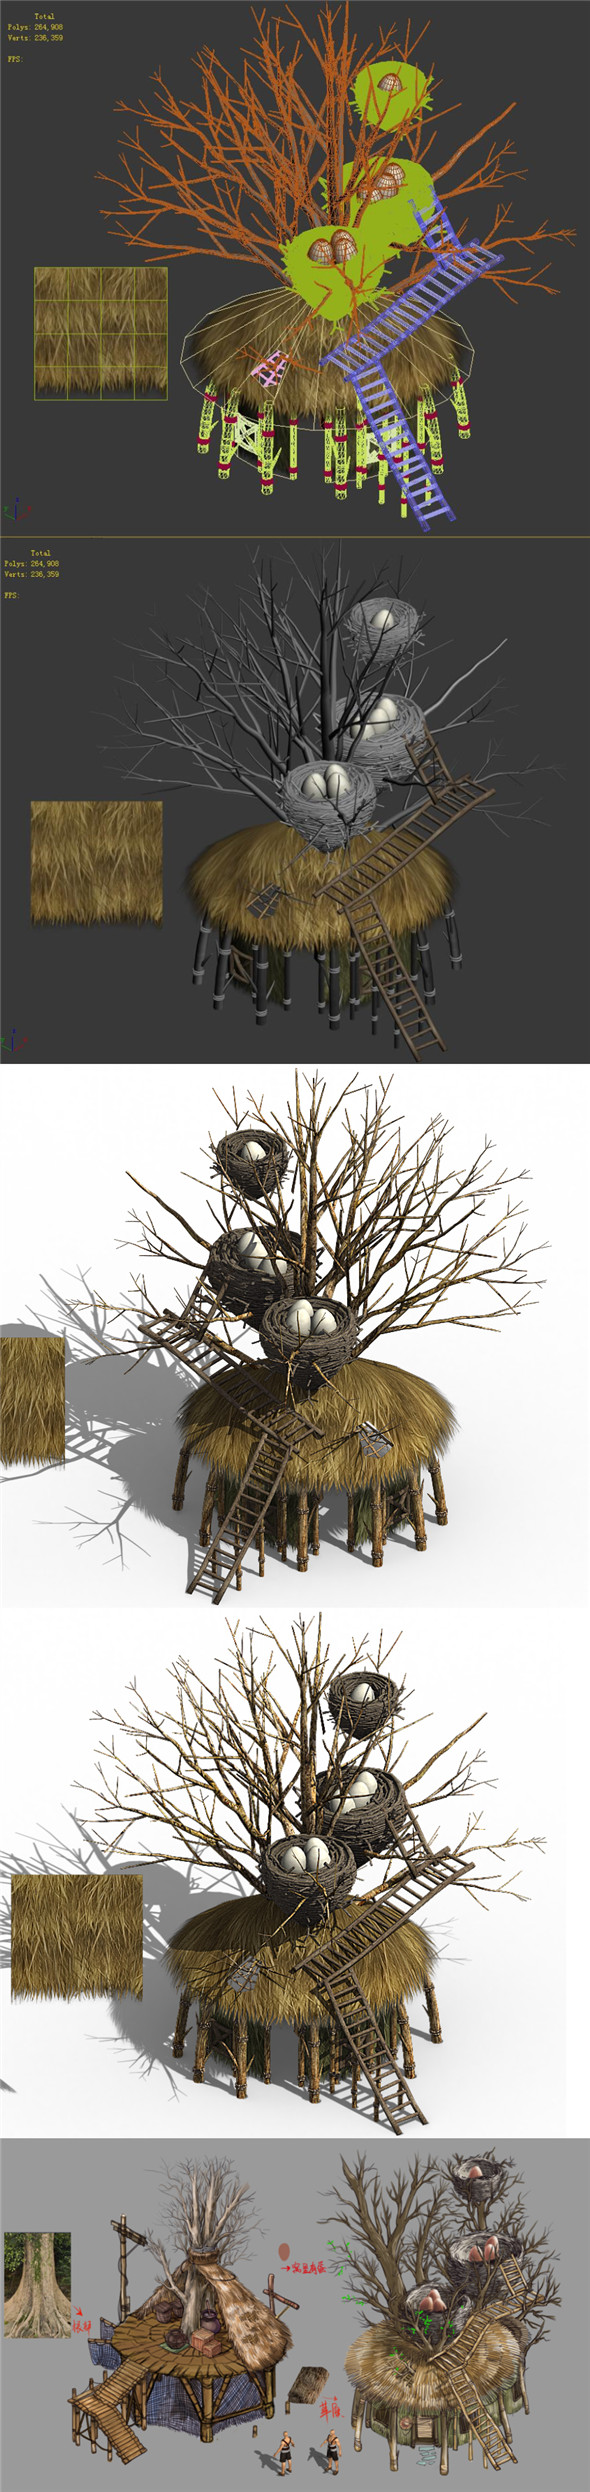 Primitive tribe - tree building 02 - 3DOcean Item for Sale